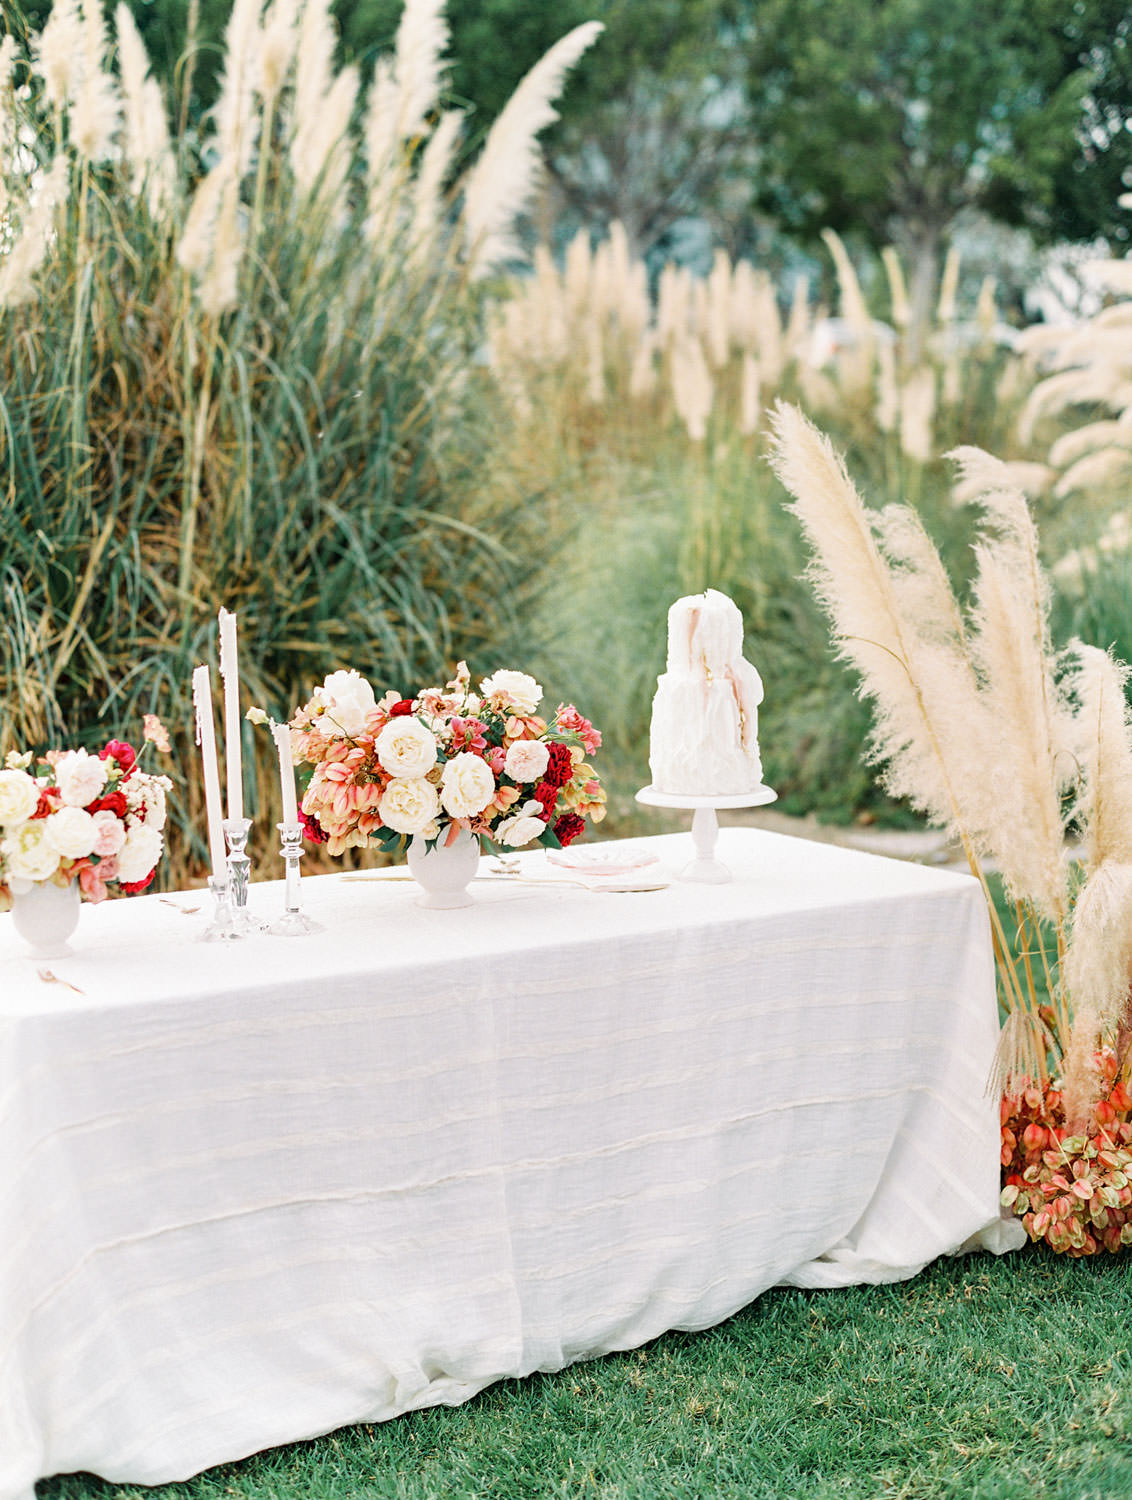 Cake table with flowers candles and cake, Textured white and blush two tier cake with accents of gold, Pampas Grass Wedding in San Diego on Film by Cavin Elizabeth Photography